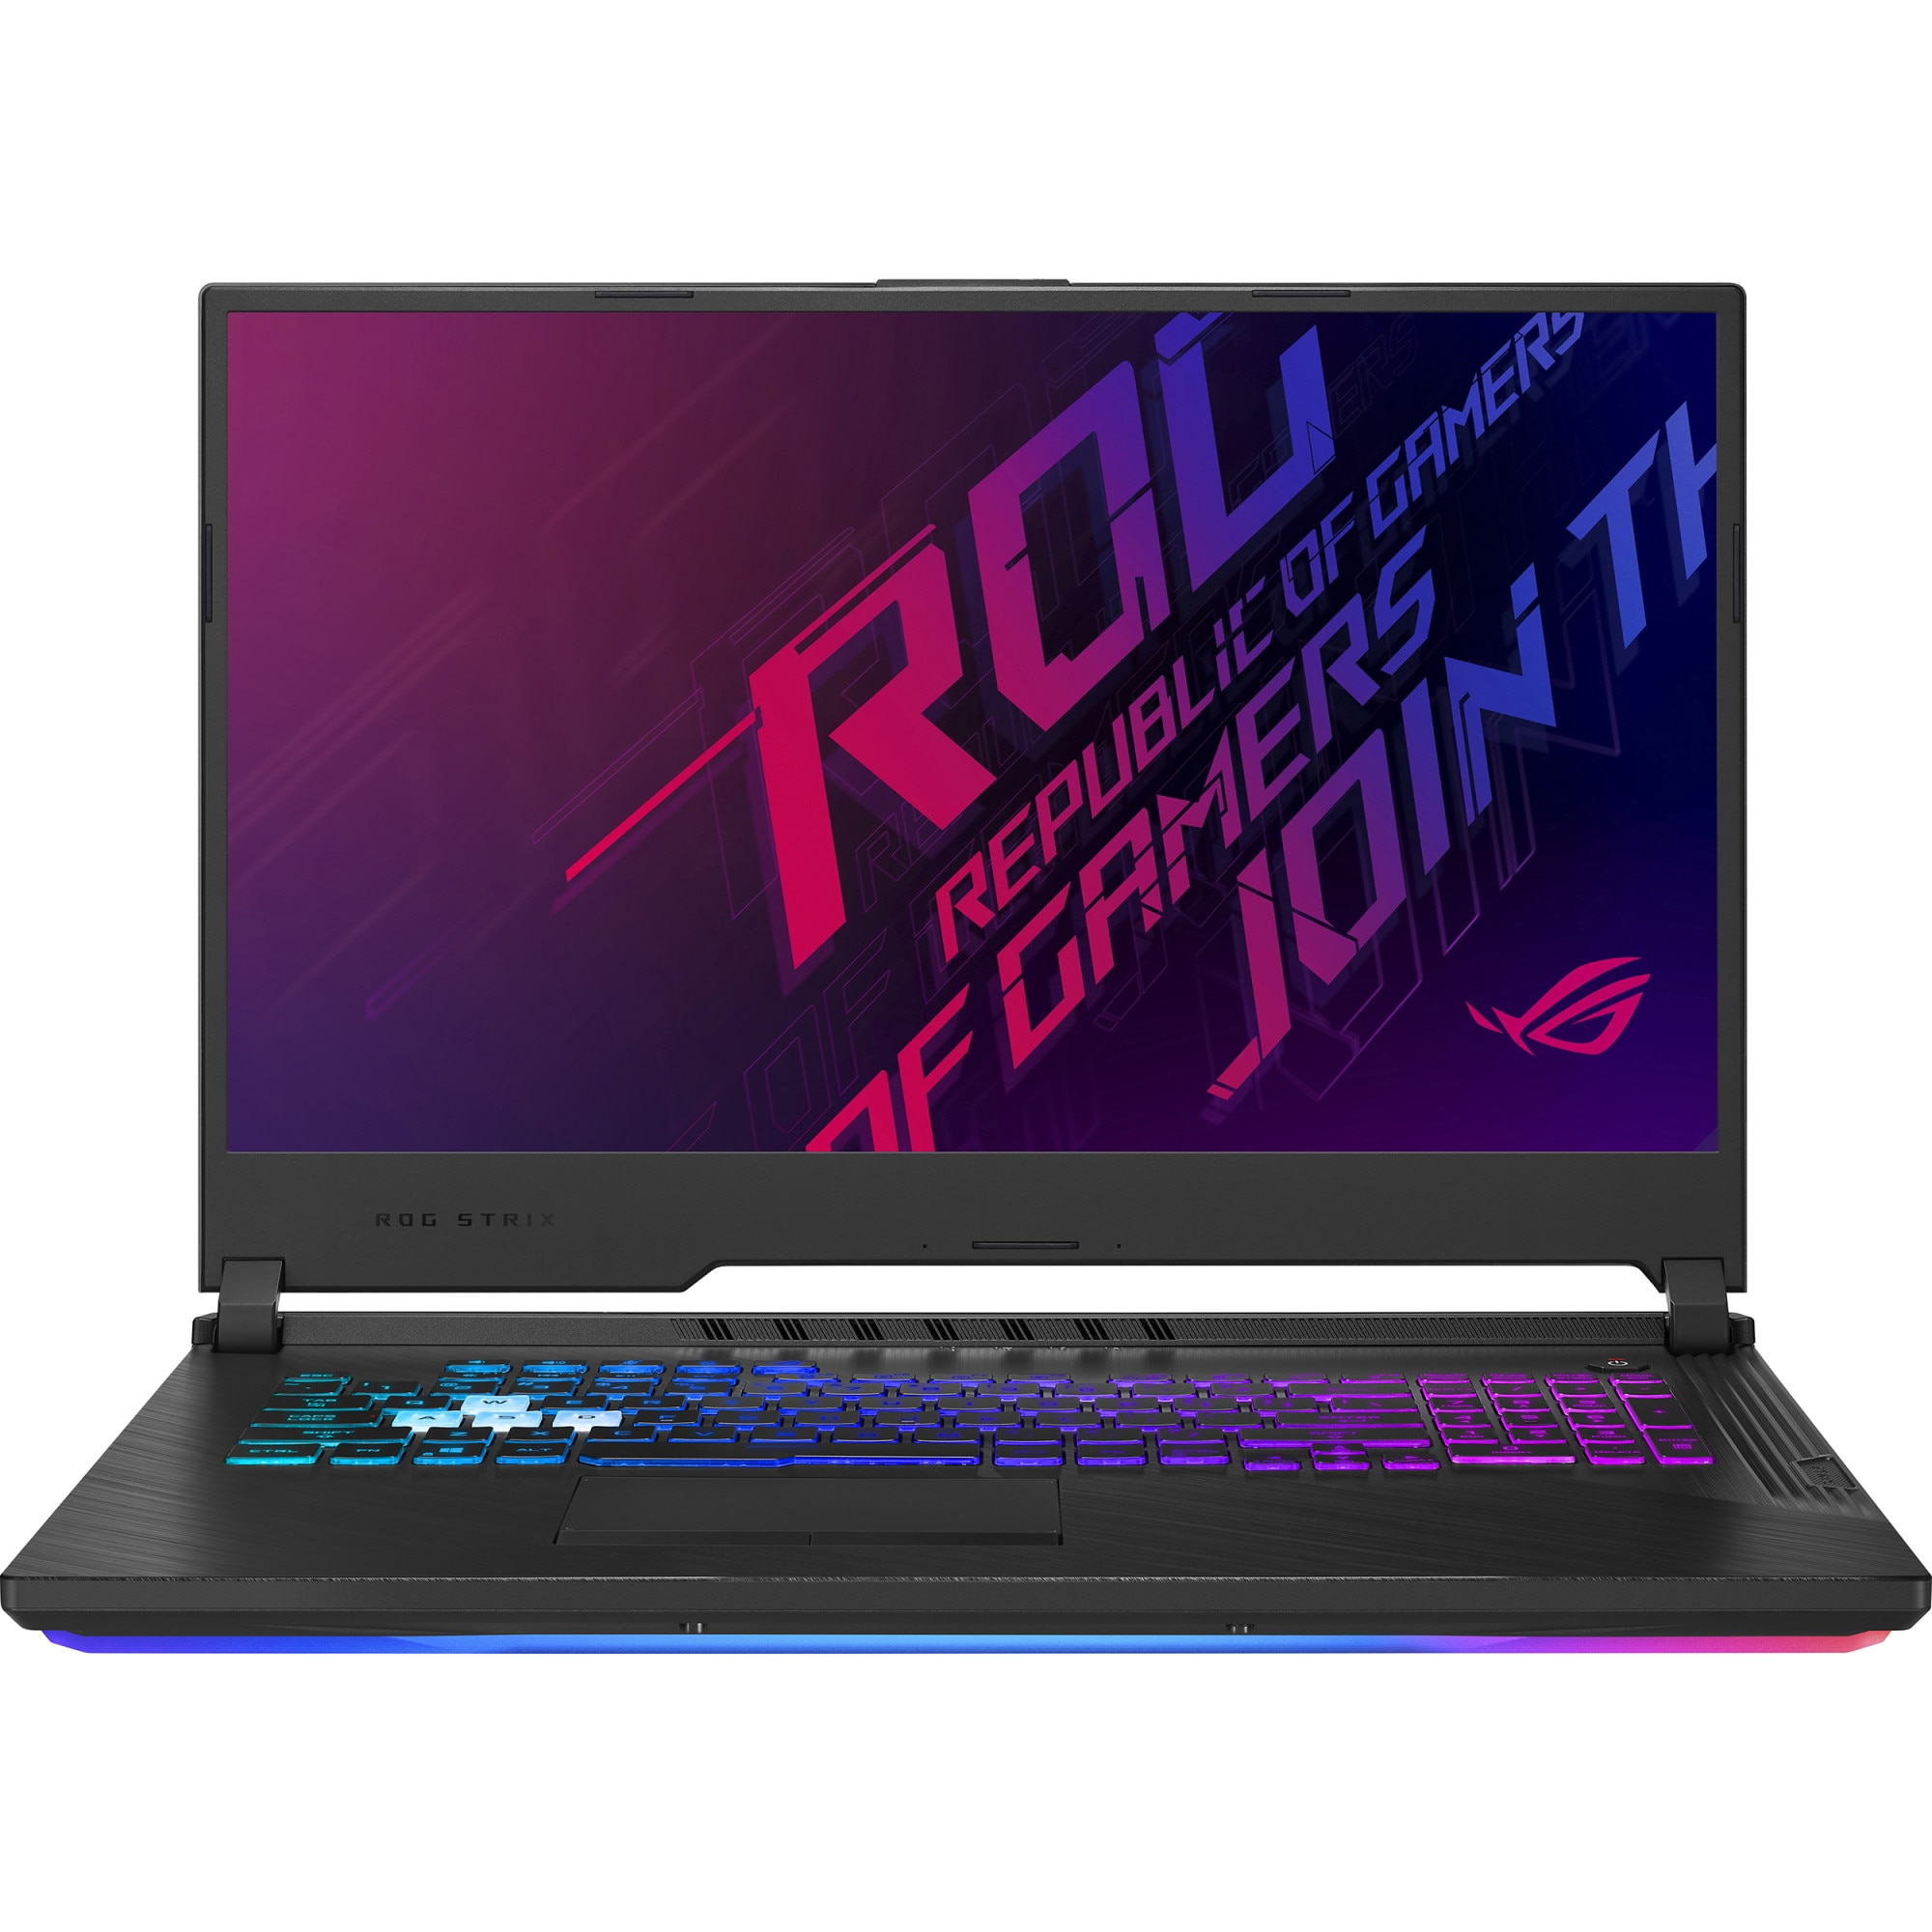 "Fotografie Laptop Gaming ASUS ROG Strix G G731GT cu procesor Intel® Core™ i7-9750H pana la 4.50GHz, 17.3"", Full HD, Antiglare, 8GB, 1TB HDD, NVIDIA® GeForce GTX 1650 4GB GDDR5, Free DOS, Black"